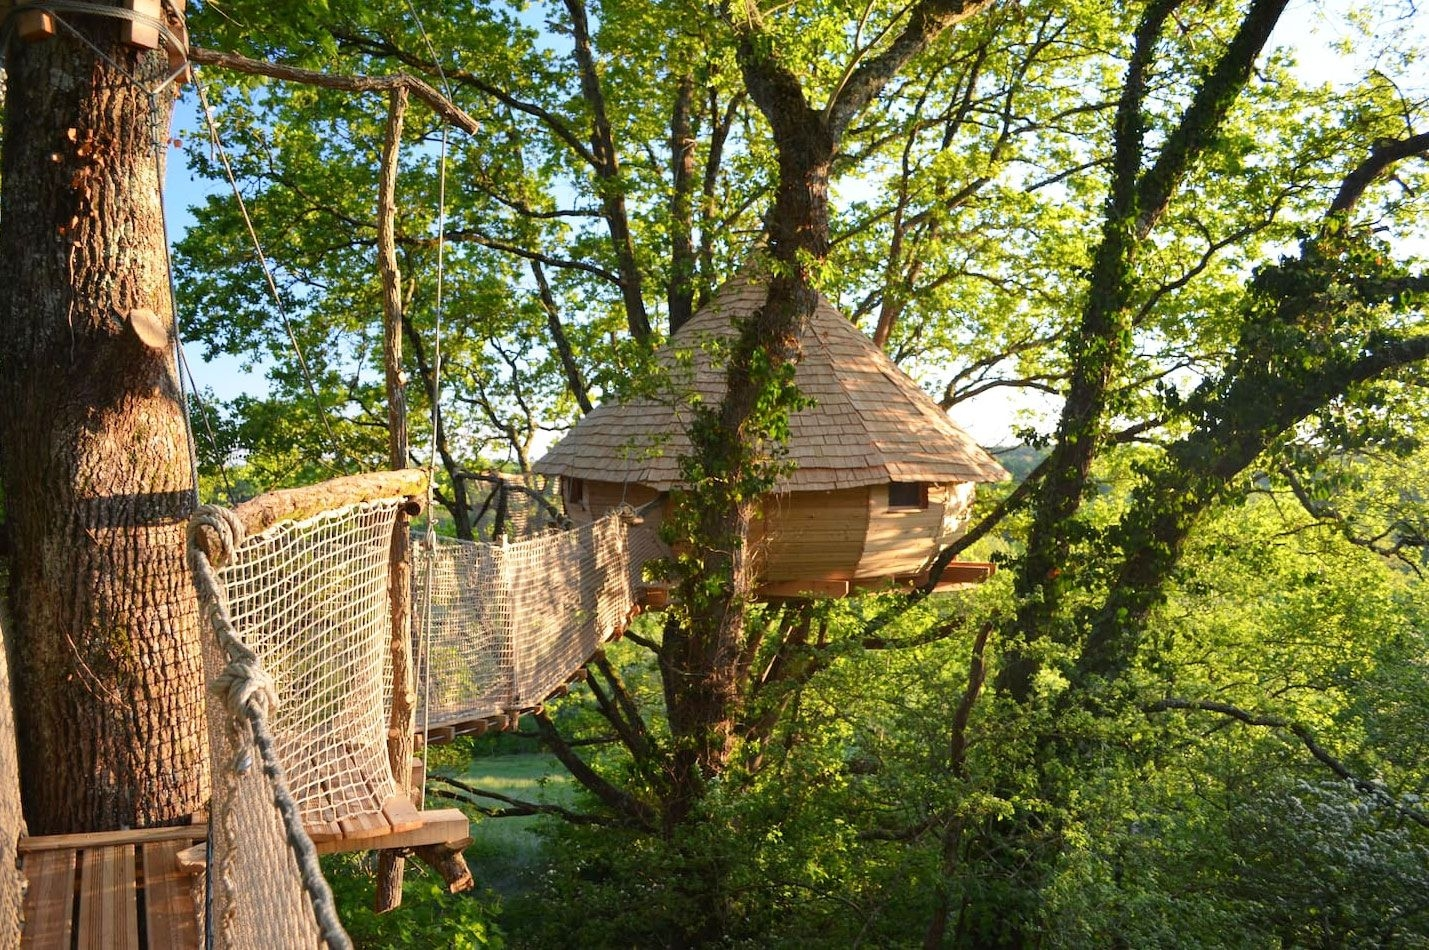 32 Amazing Treehouses You Can Rent In 2020 Best Tree House Vacations   Spiral Staircase Around Tree Trunk   Stair Case   Nelson Treehouse   Staircase Design   Robert Mcintyre   Canopystair